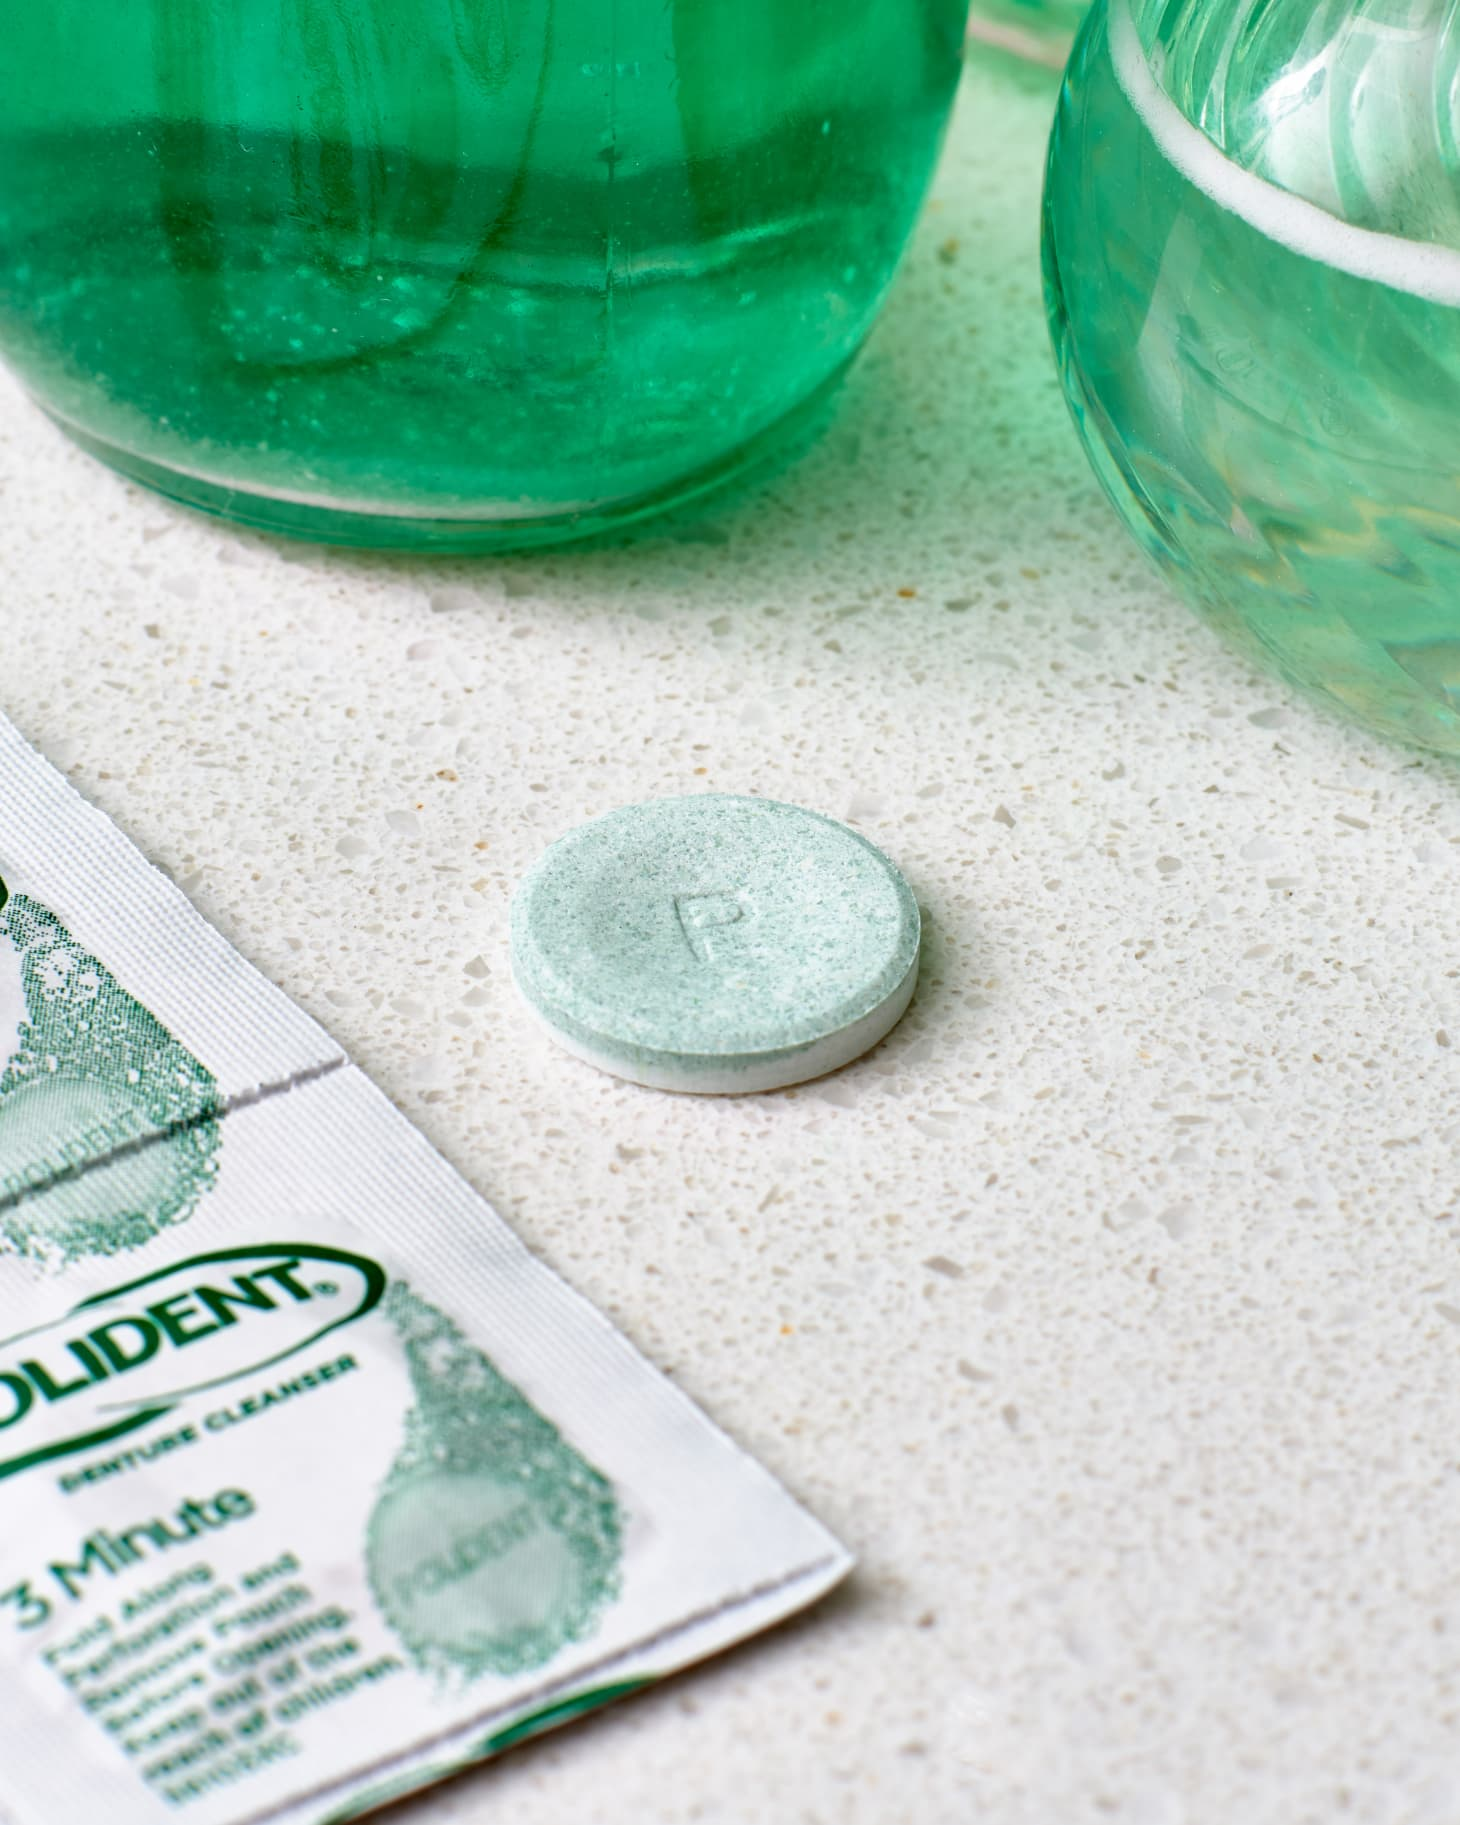 10 Surprising Things You Can Clean With Denture Tablets